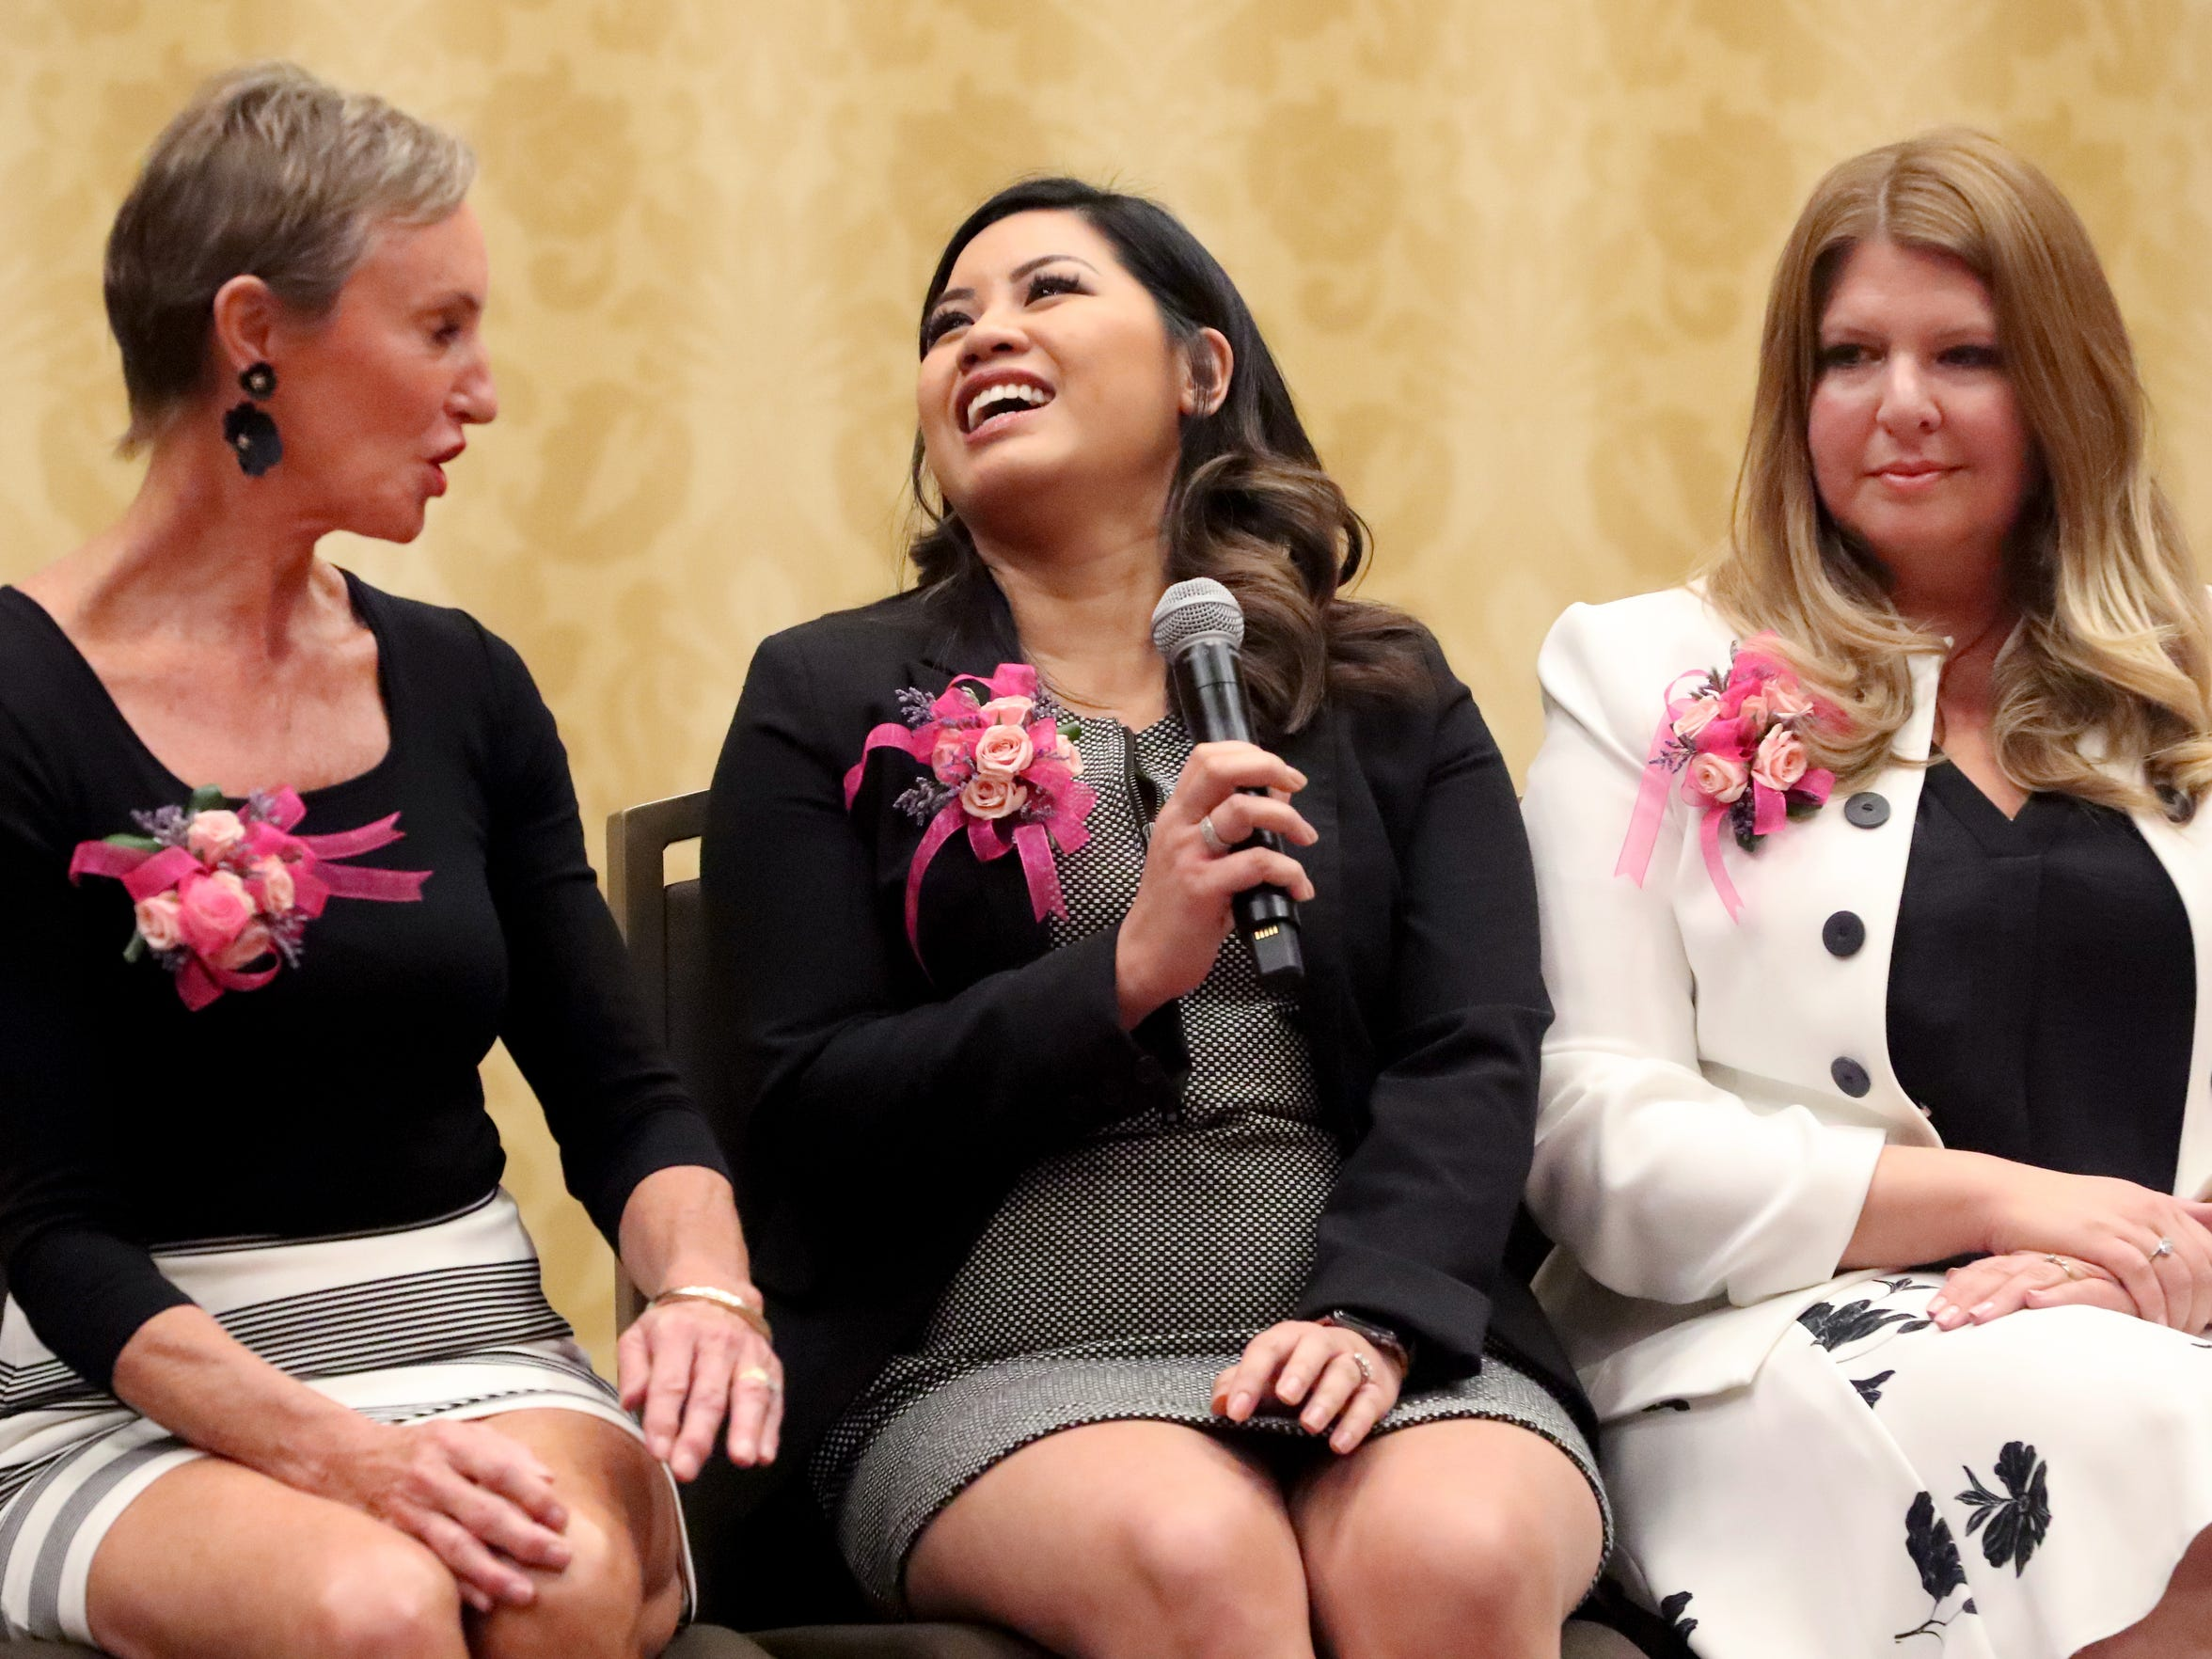 Honoree Amy Jennings, owner of The Nail Room at Beehive Salon, answers questions during the Murfreesboro Magazine's 2019 Women in Business Luncheon on Tuesday, March 12, 2019, at the Embassy Suites Murfreesboro.